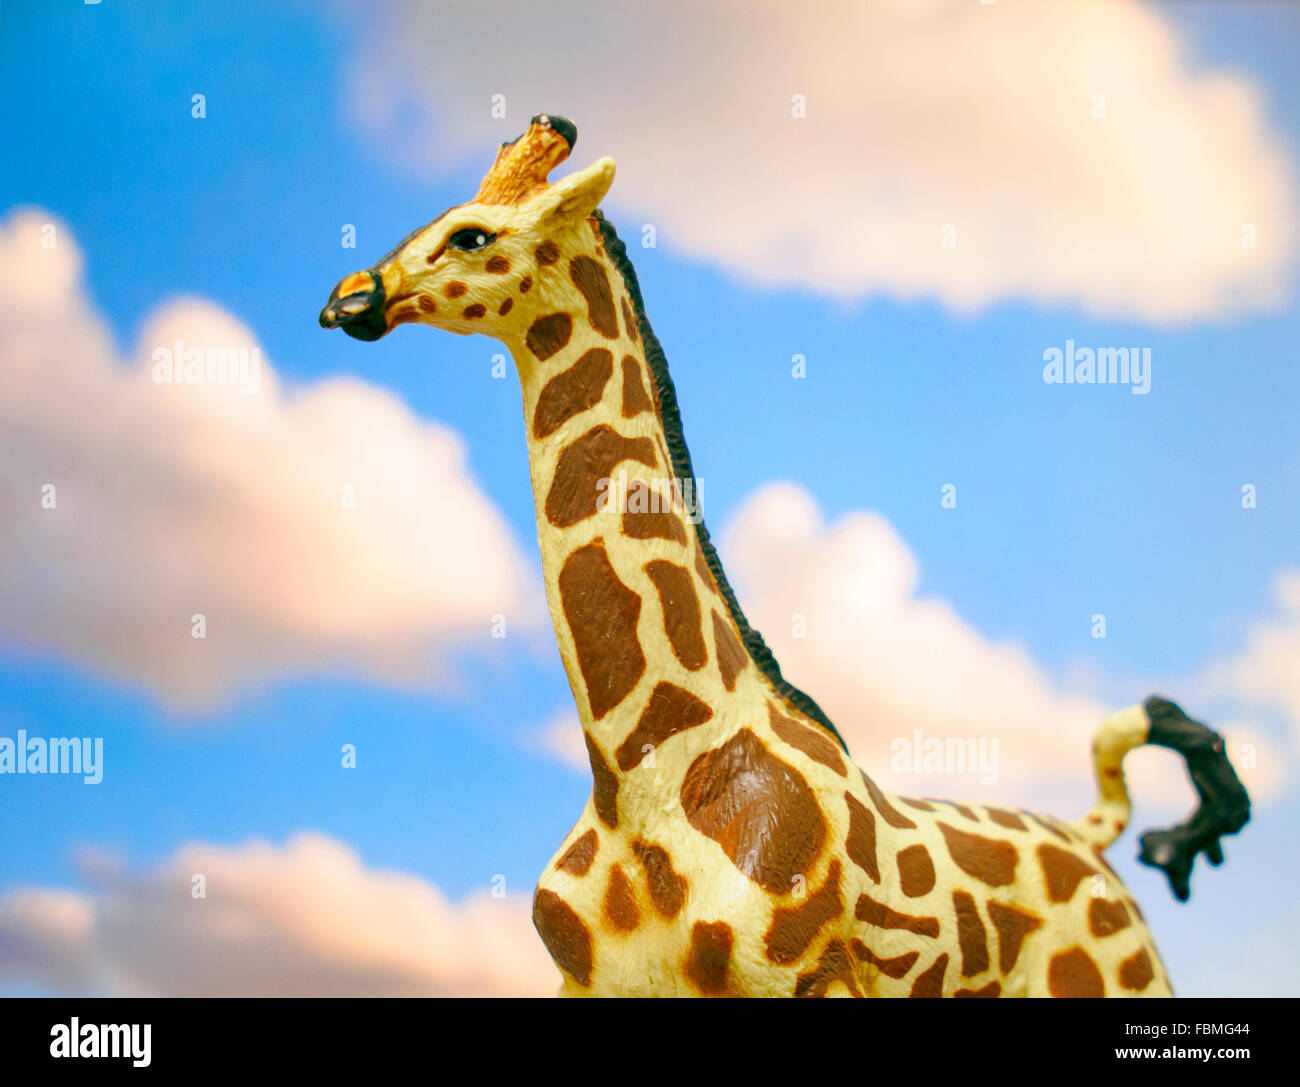 Toy giraffe on cloudy sky background - Stock Image